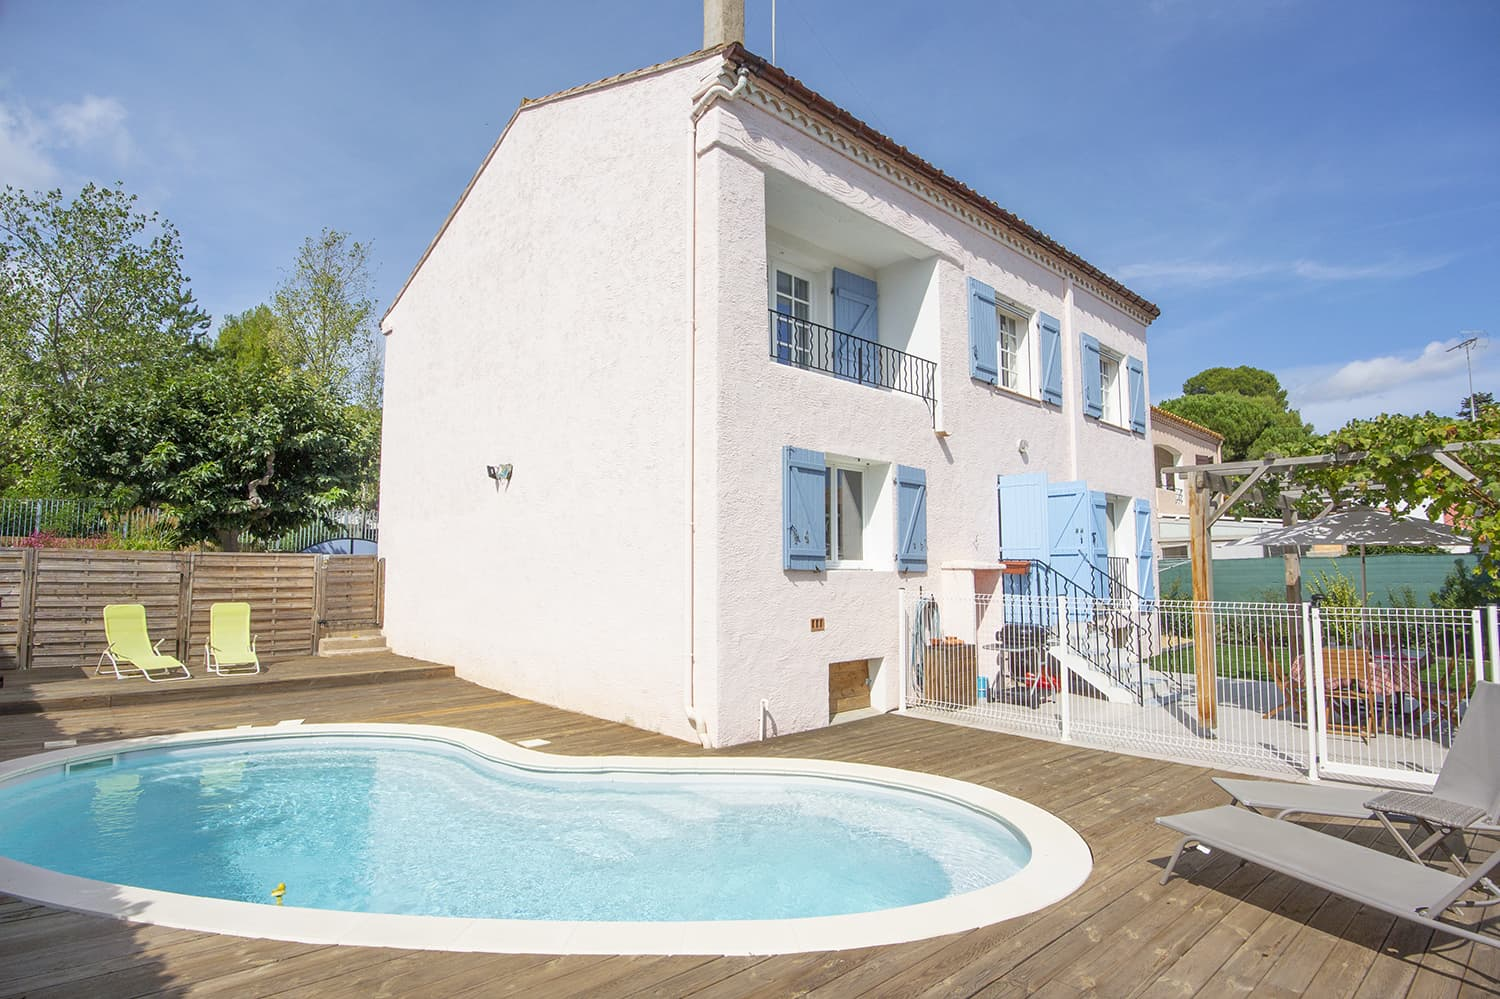 Rental home in Pézenas, Occitanie, with private pool